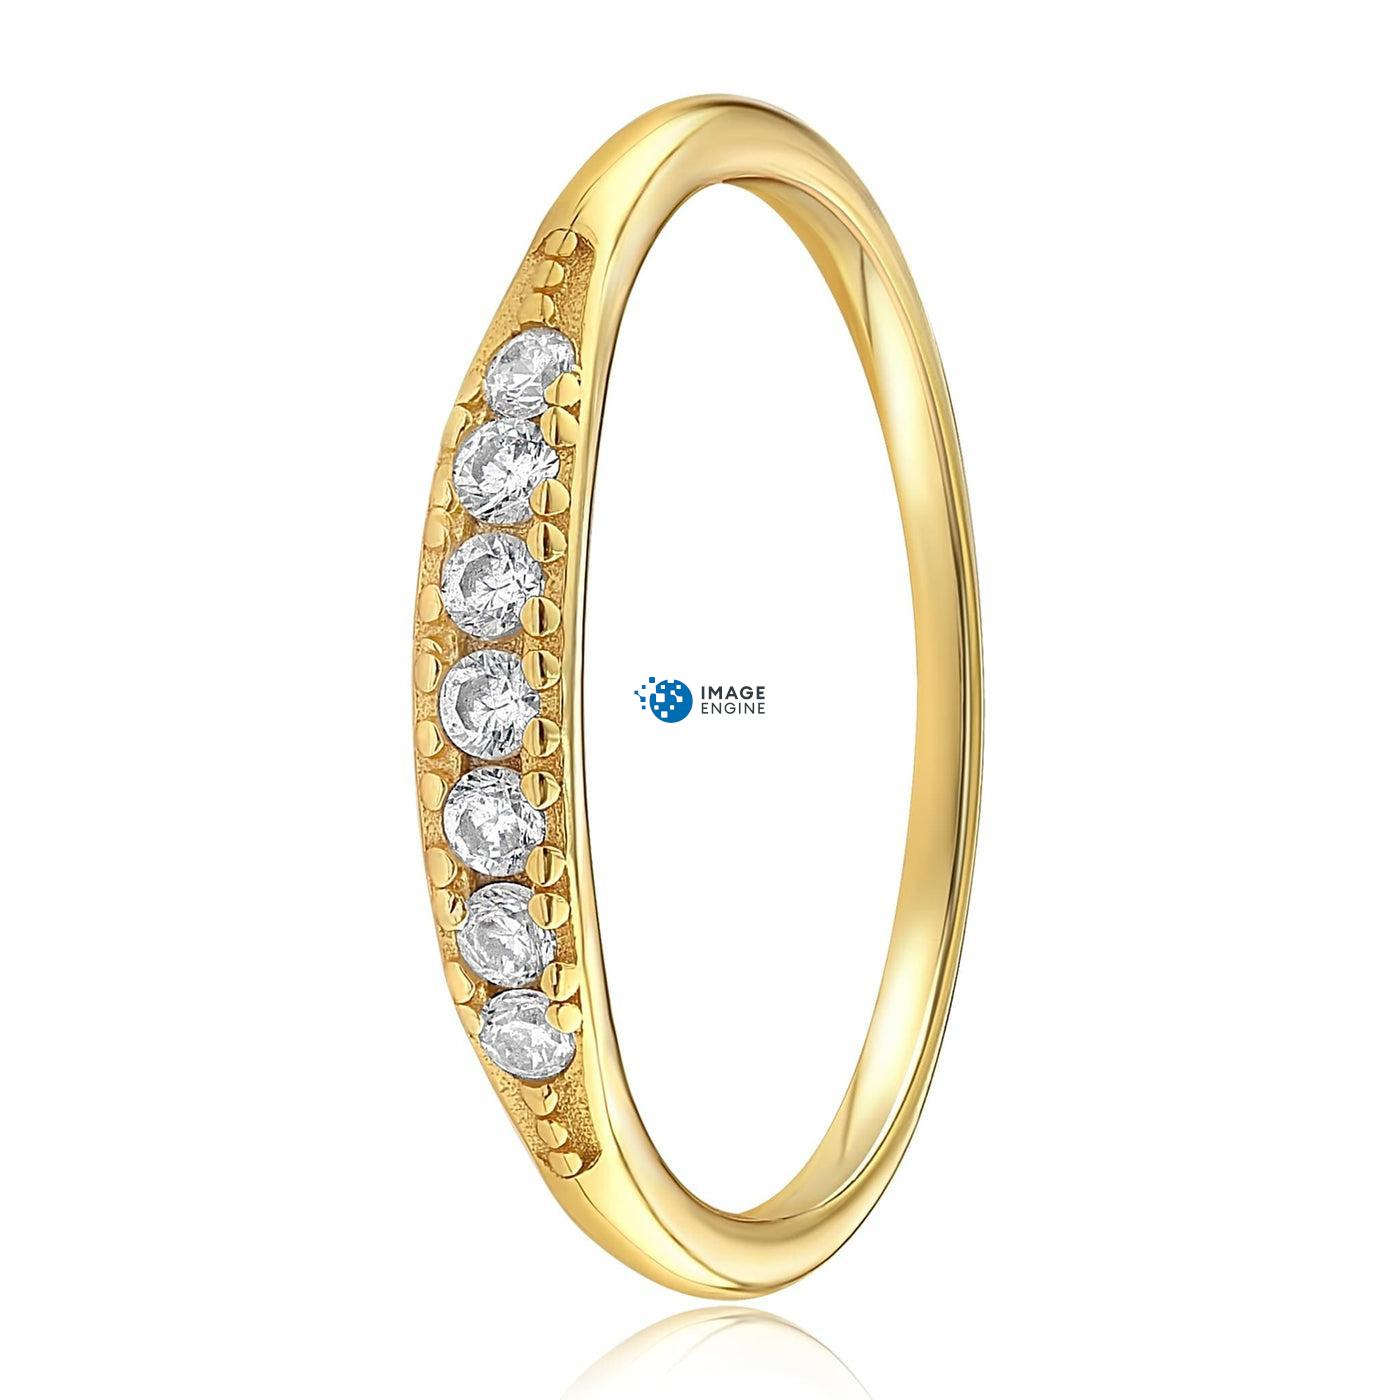 Kathleen Stack Ring - Side View - 18K Yellow Gold Vermeil